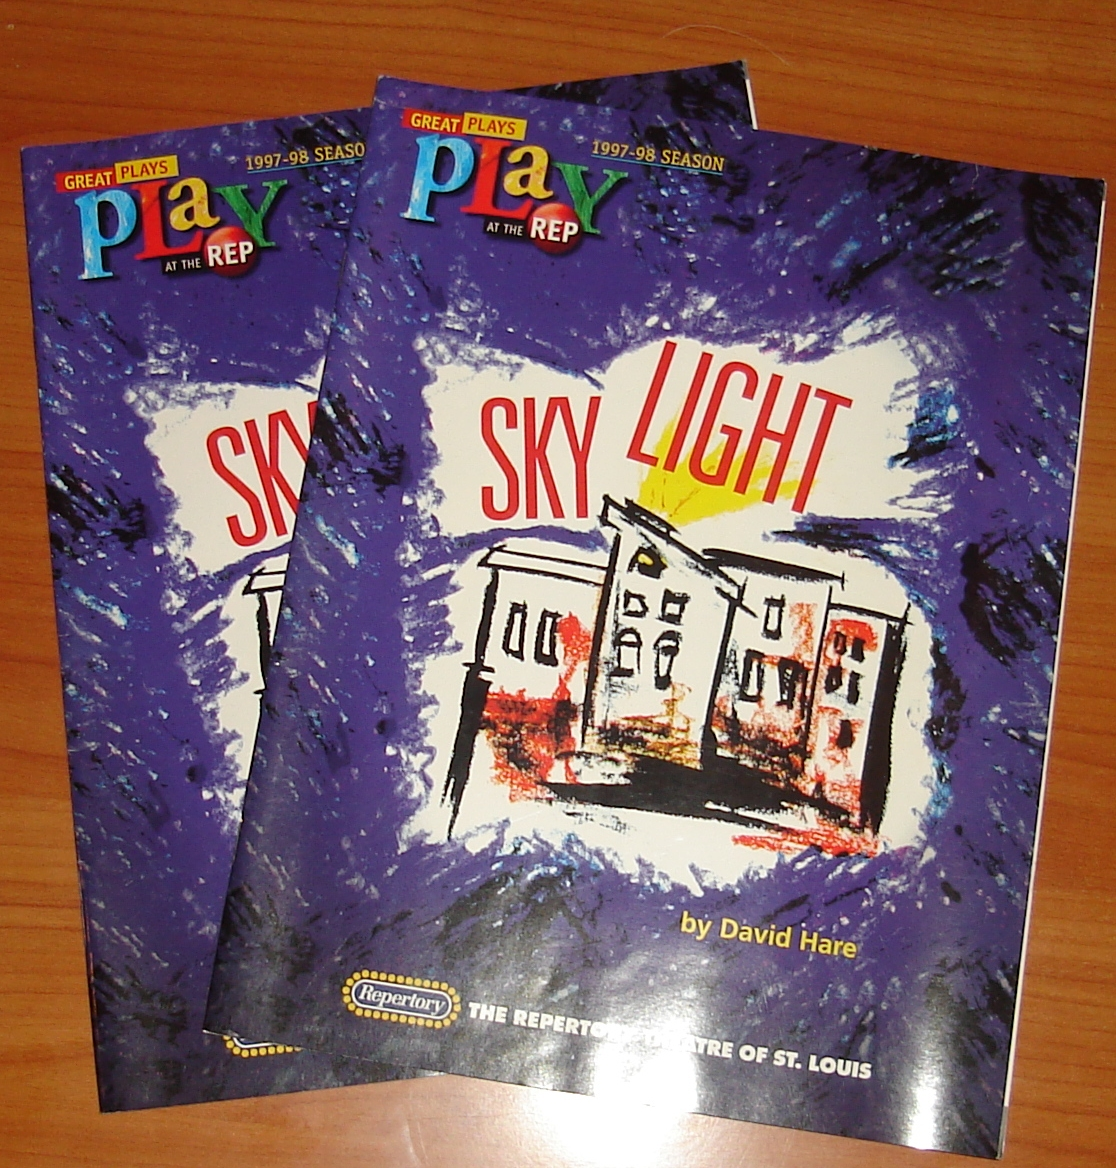 Playbill for Skylight at the St. Louis Rep